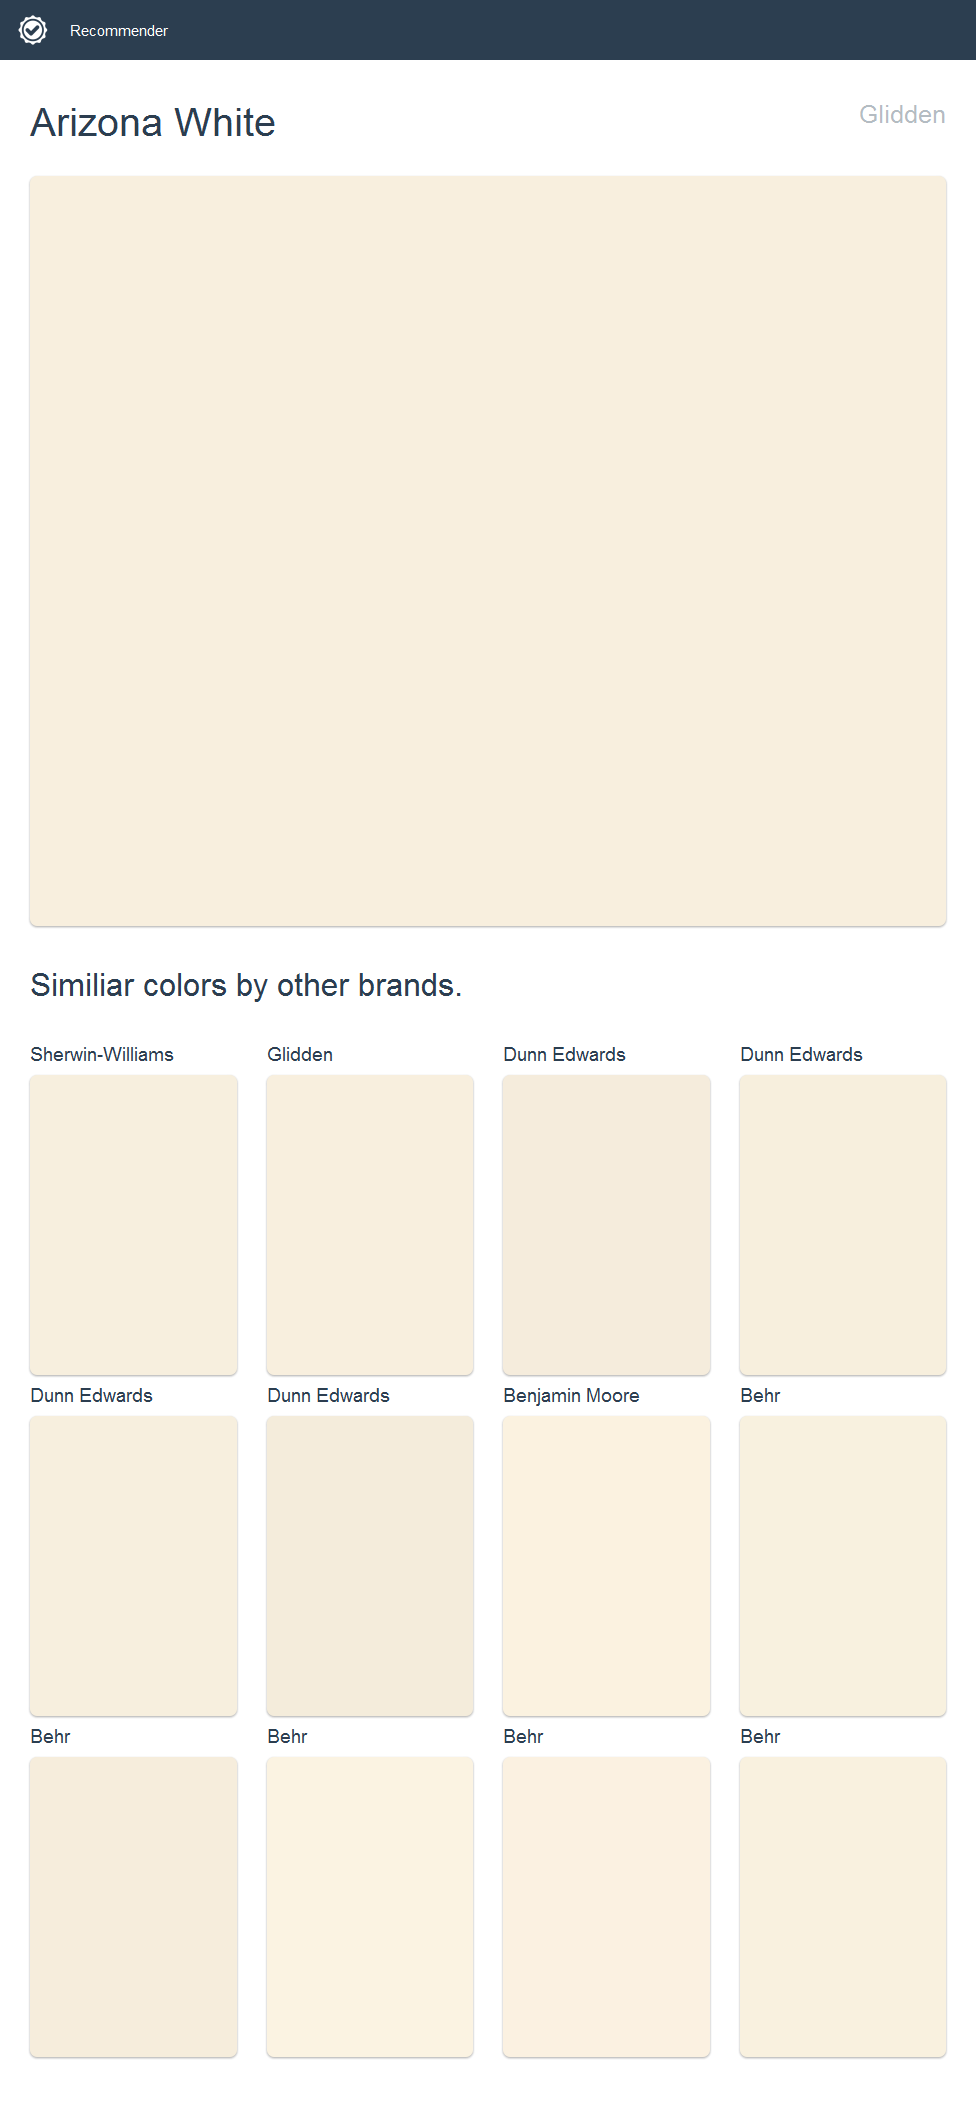 Arizona White Glidden Click The Image To See Similiar Colors By Other Brands